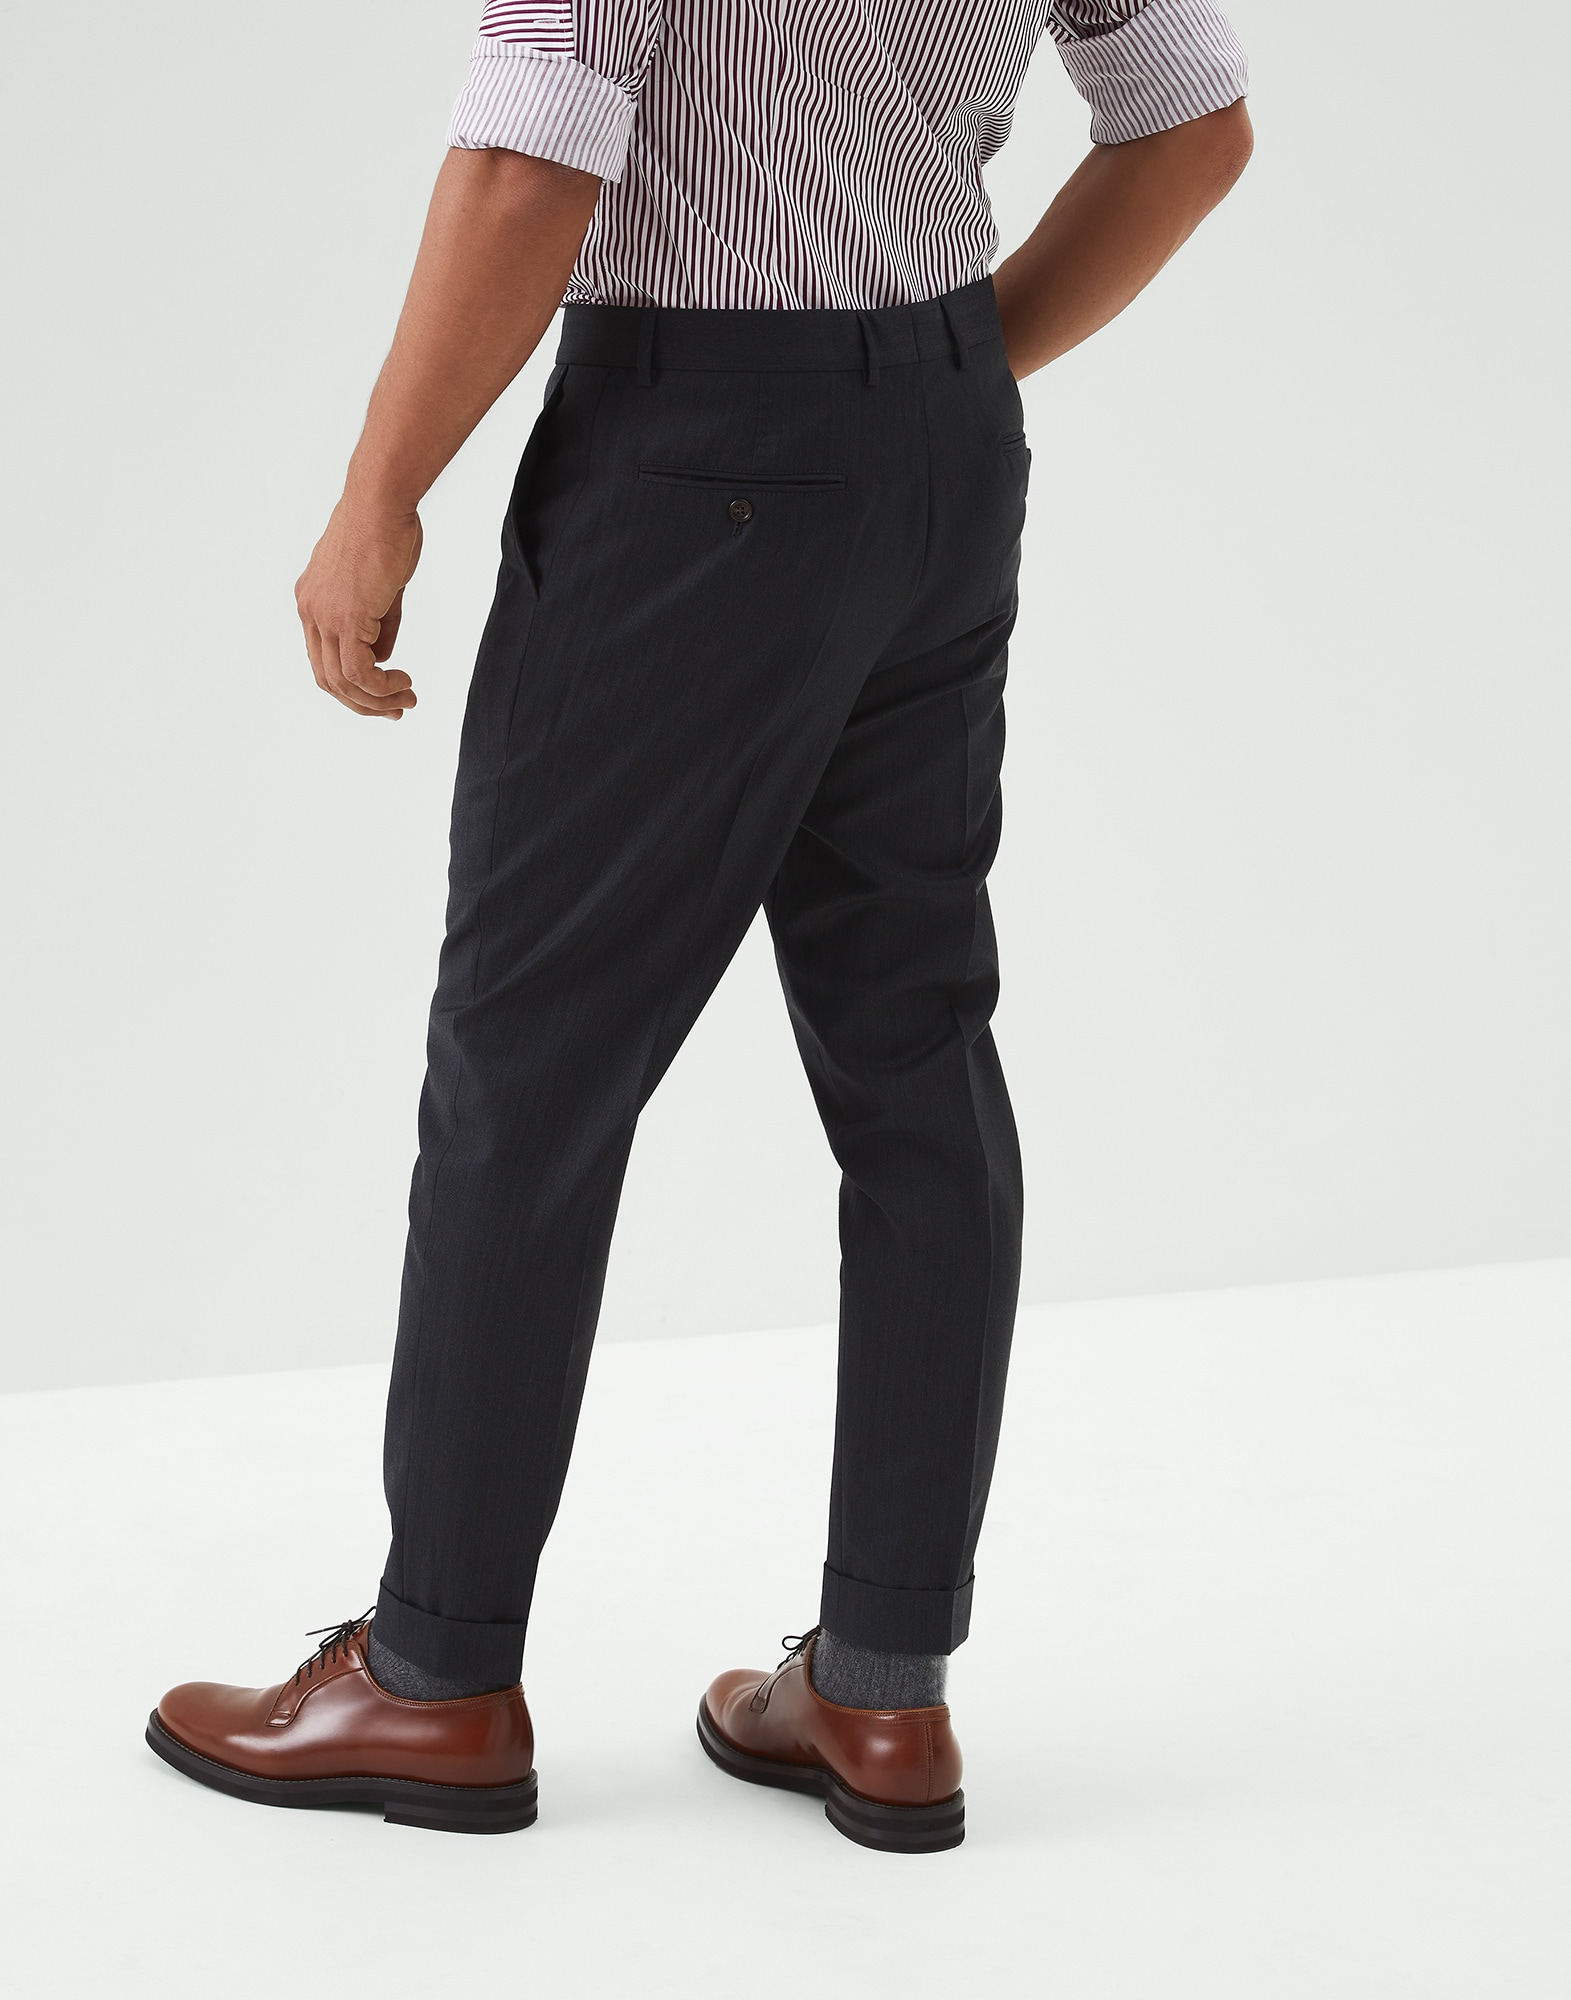 Trousers Anthracite Man 1 - Brunello Cucinelli